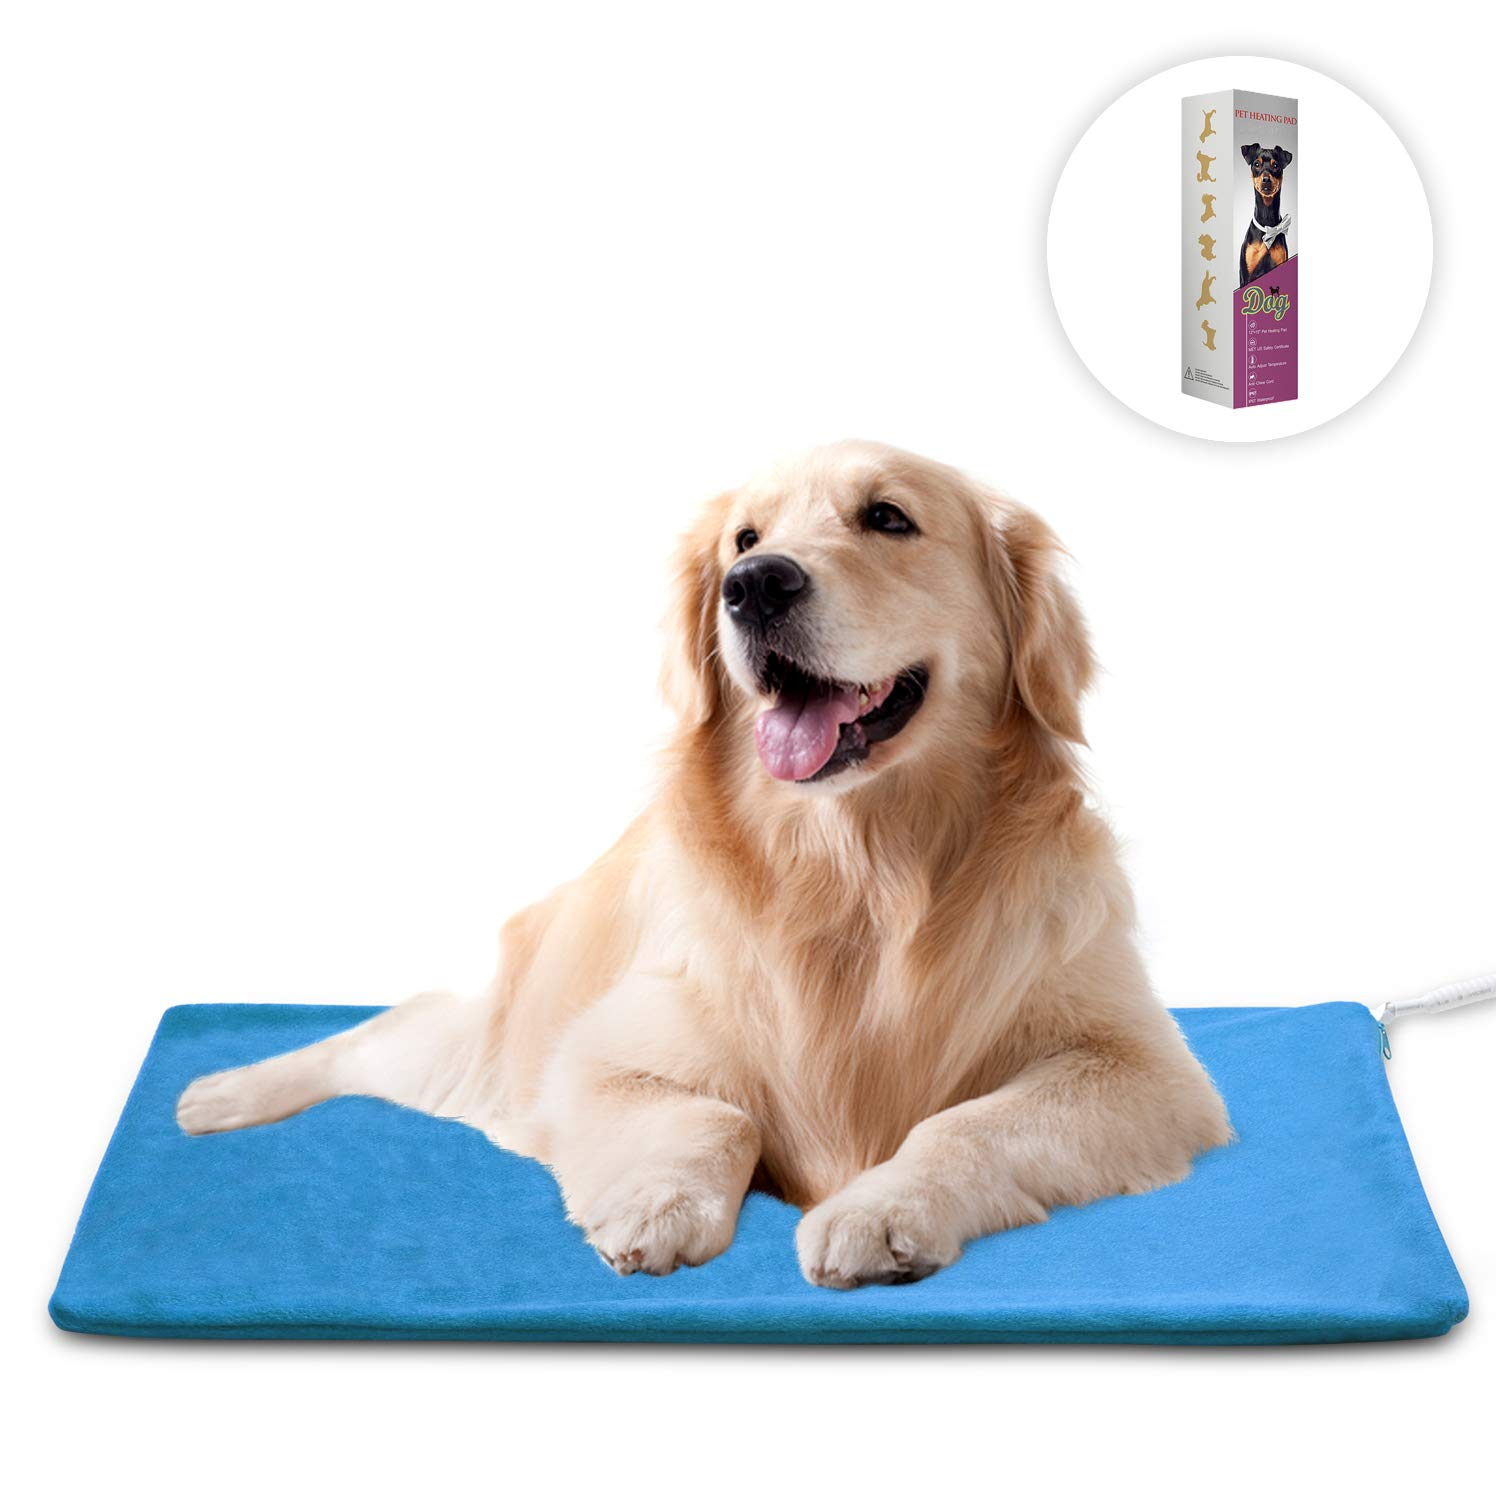 MARUNDA Pet Heating Pad Large,Dog Cat Heating pad Indoor Waterproof,Auto Constant Temperature Warming 15x24 inches Bed with Chew Resistant Steel Cord